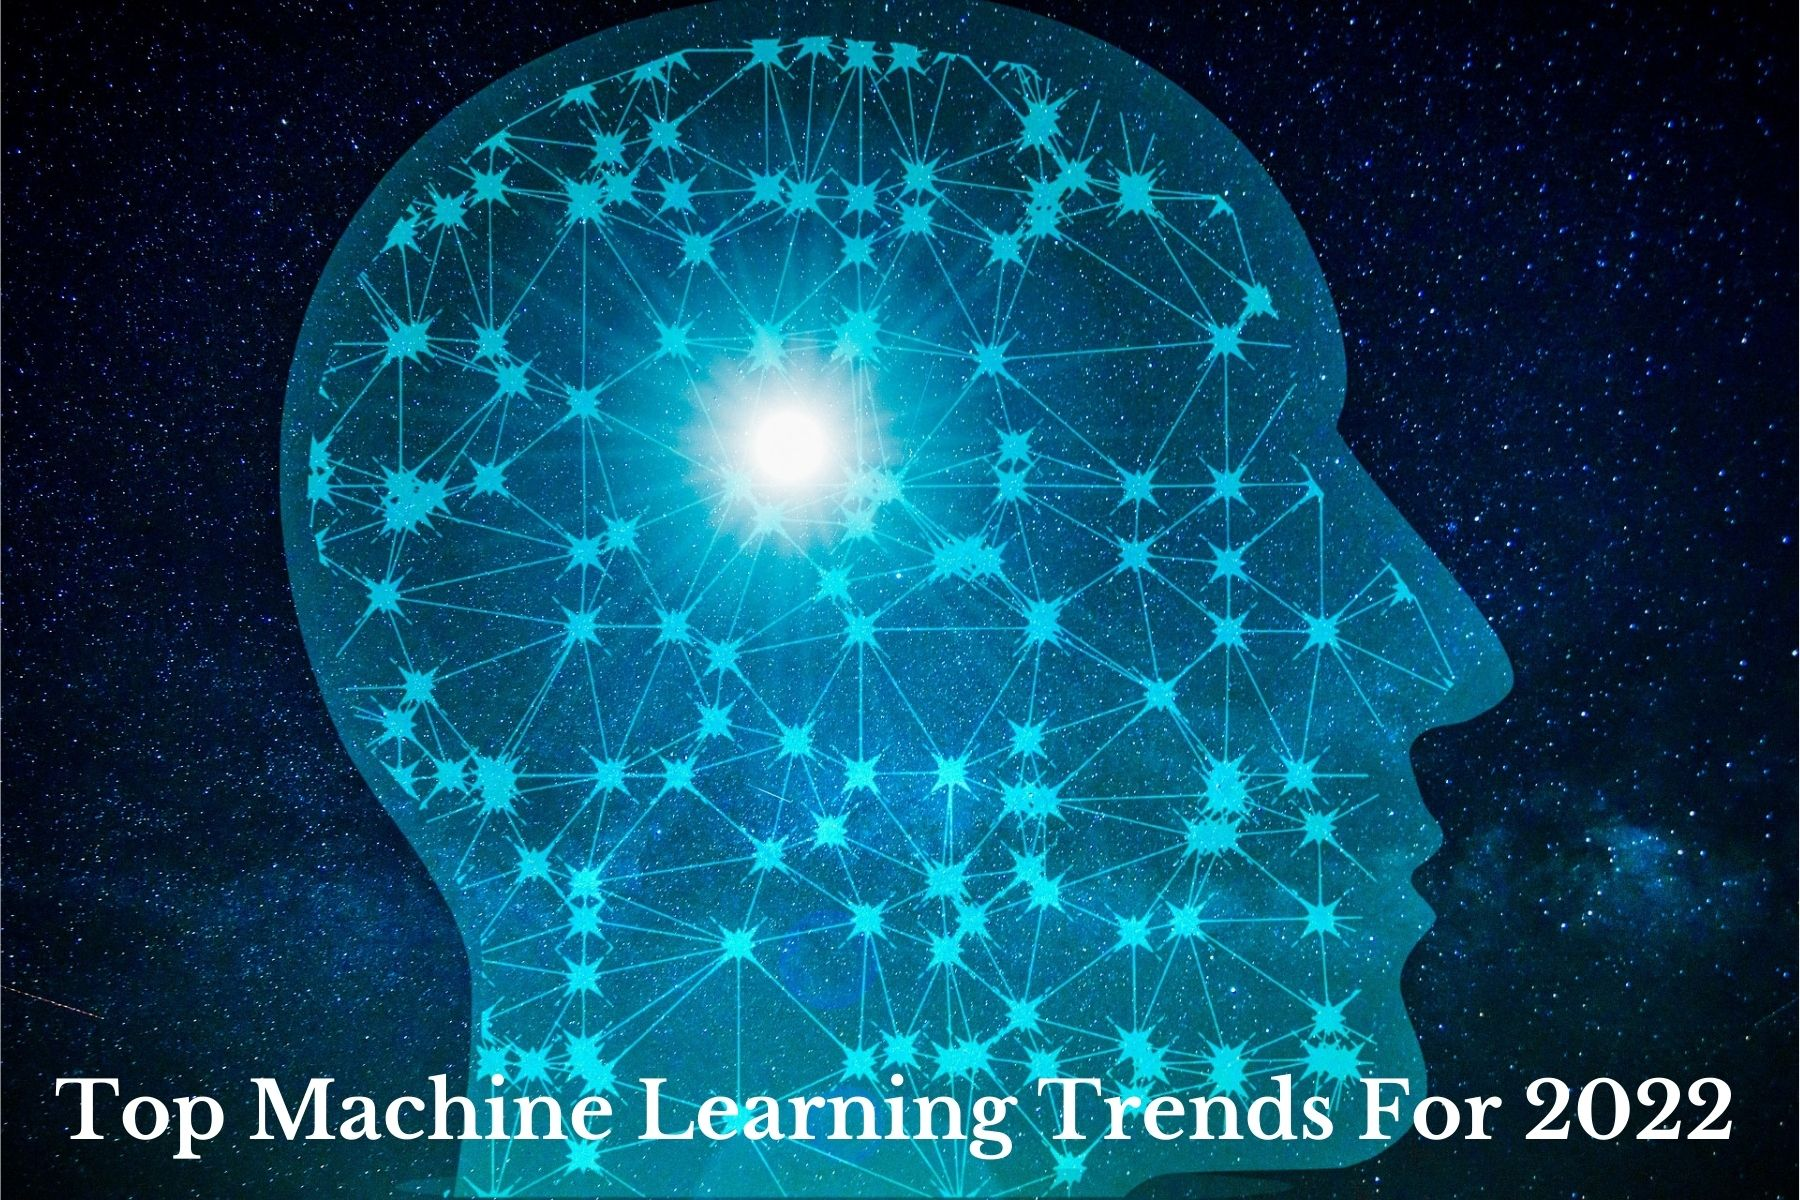 Top Machine Learning Trends For 2022 and Beyond